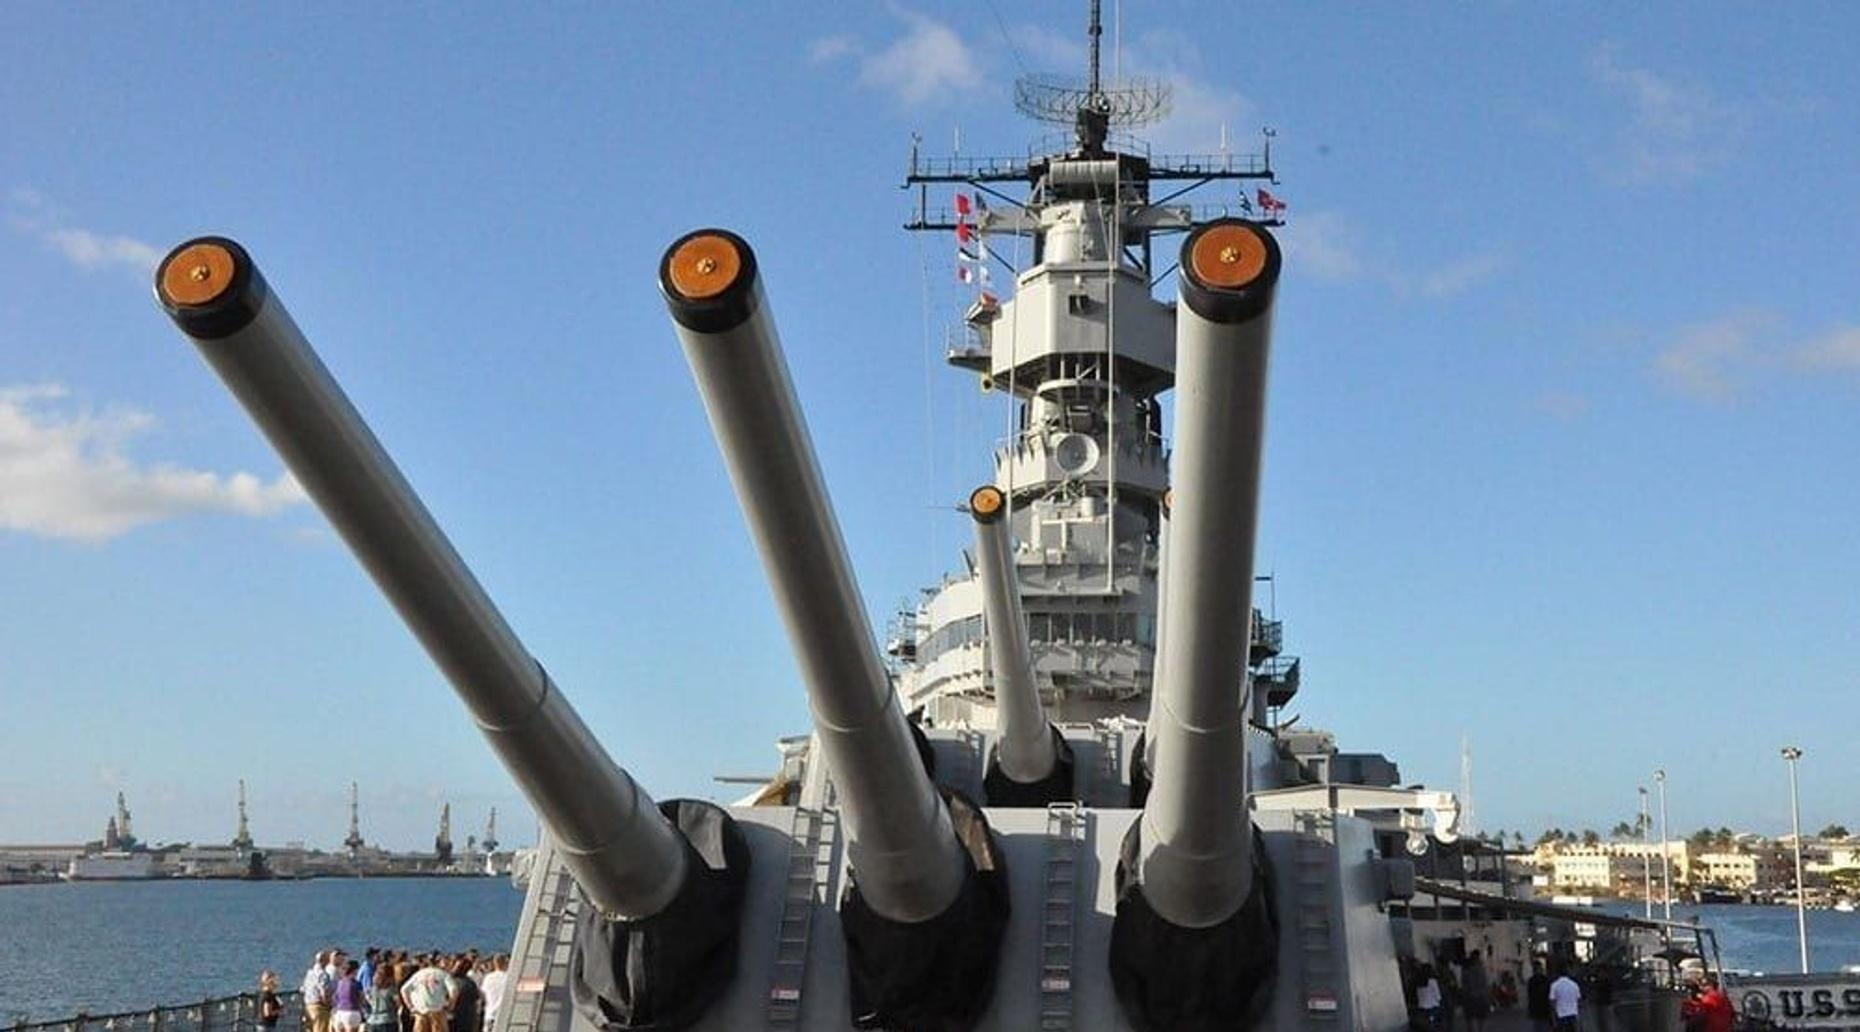 USS Missouri, Arizona Memorial & Pearl Harbor Premium Tour